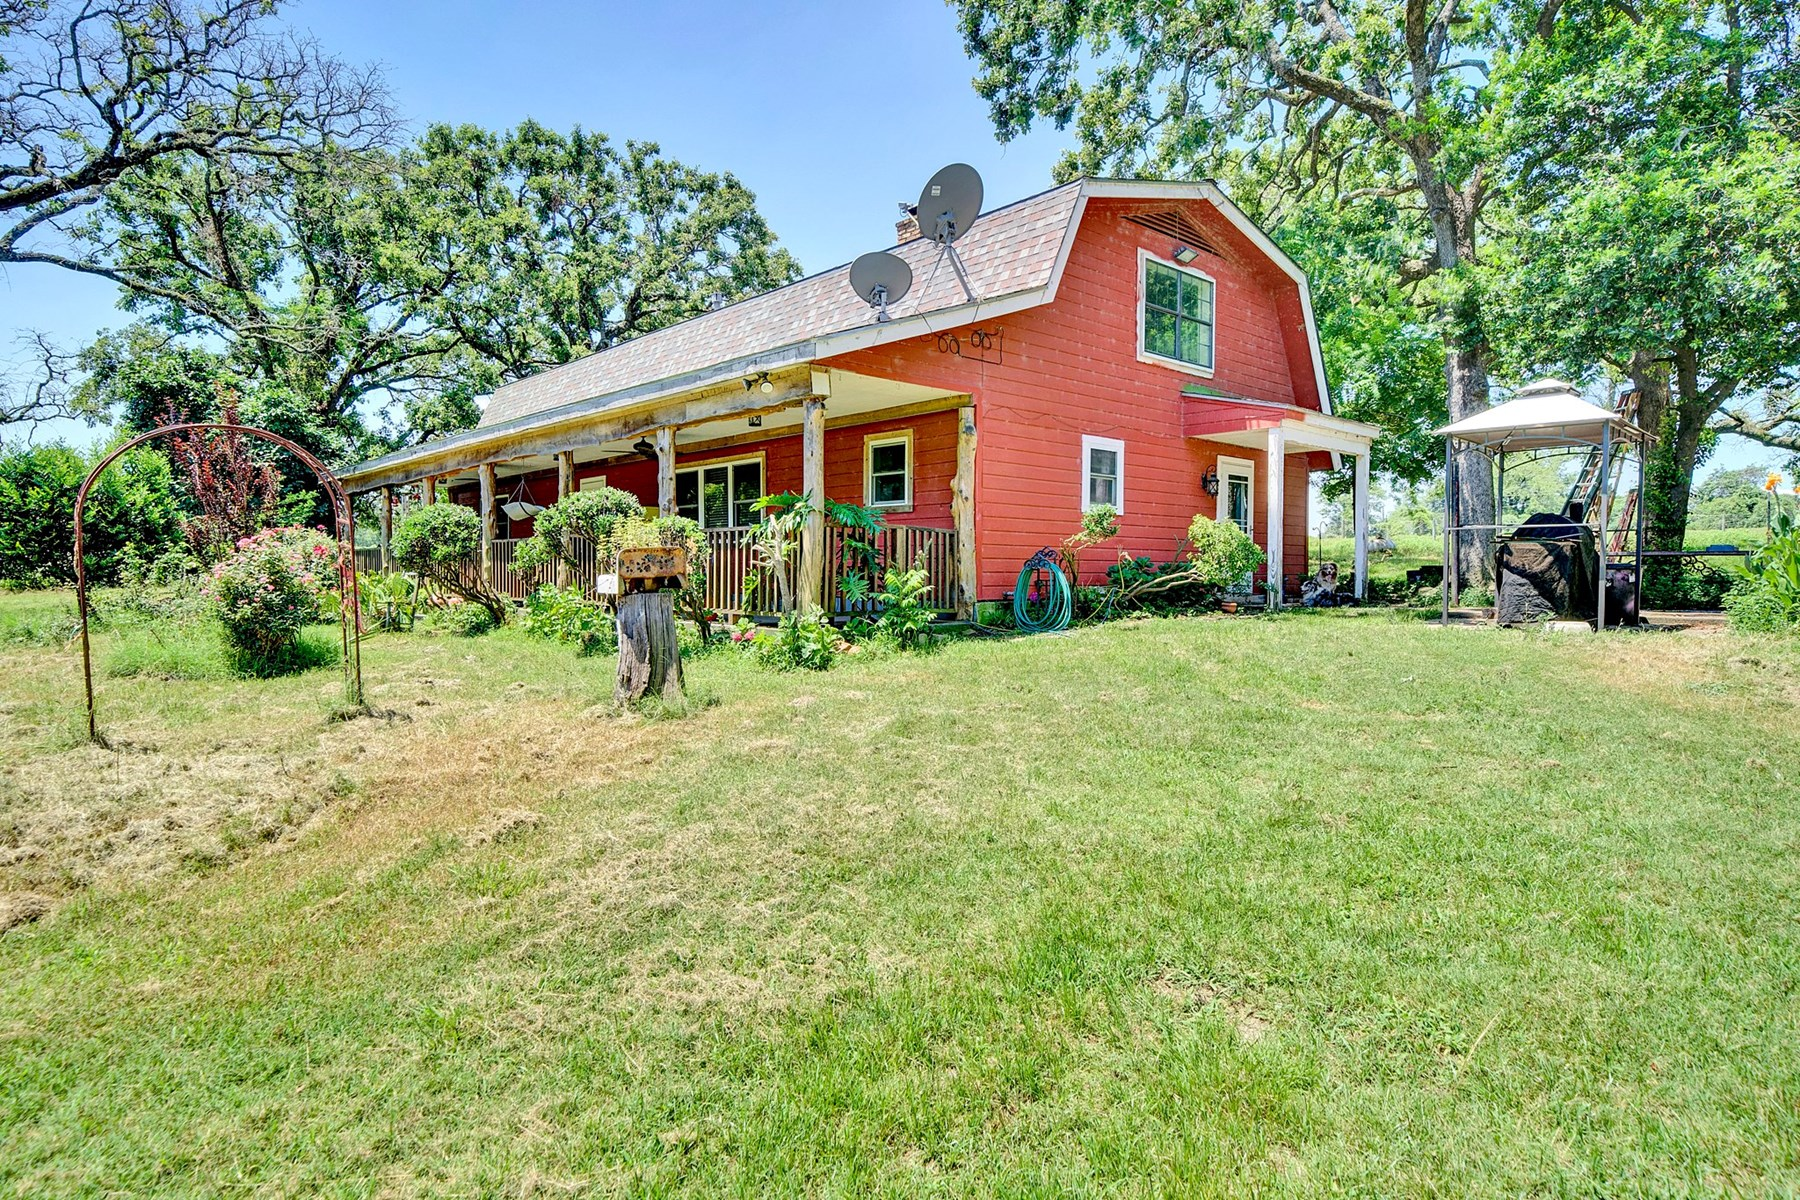 Equine Property With Farmhouse For Sale in Palestine, Texas!